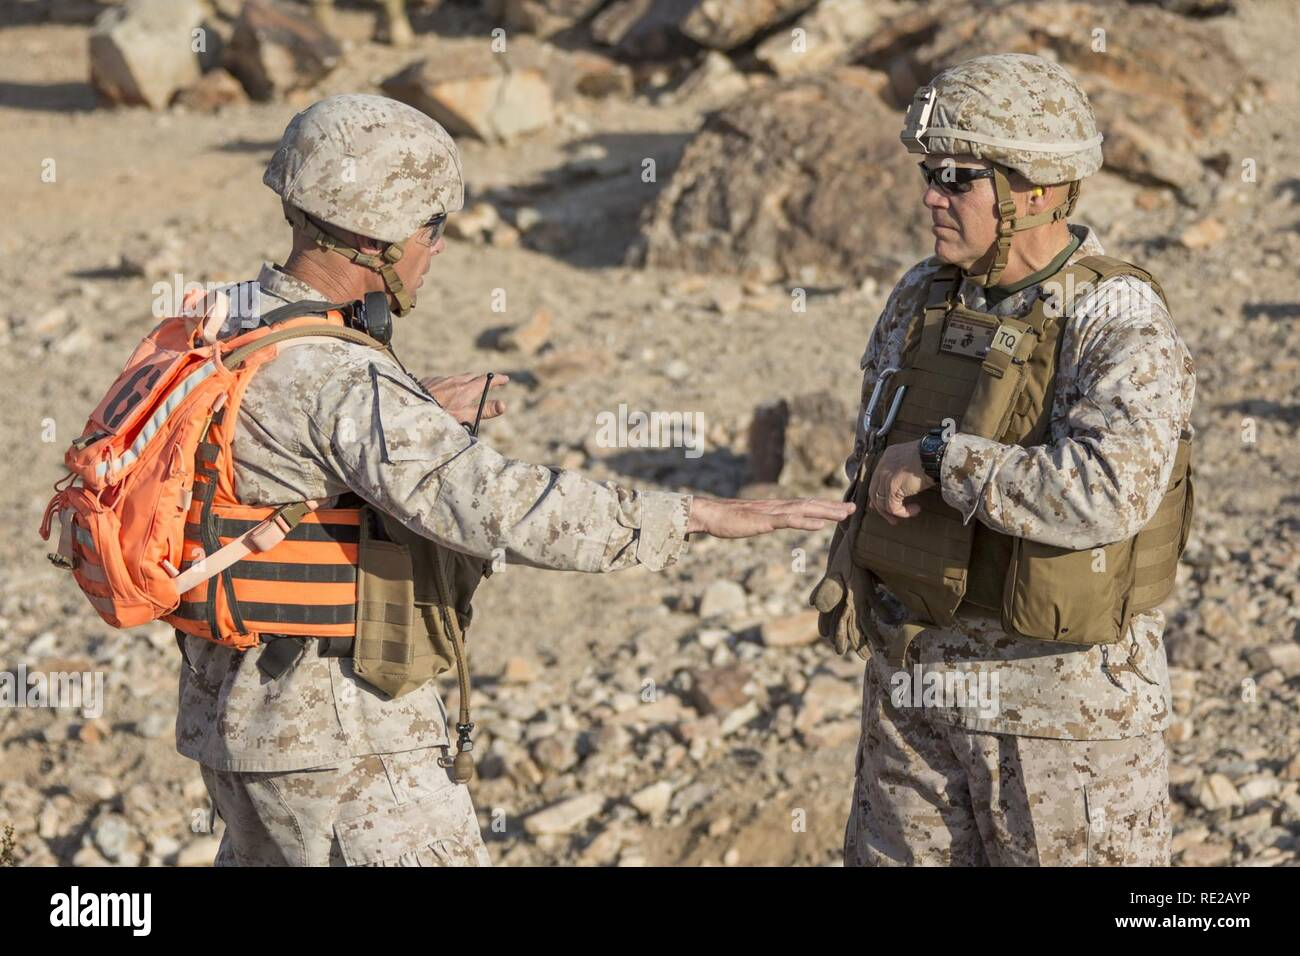 Tactical Training Exercise Control Group Stock Photos & Tactical